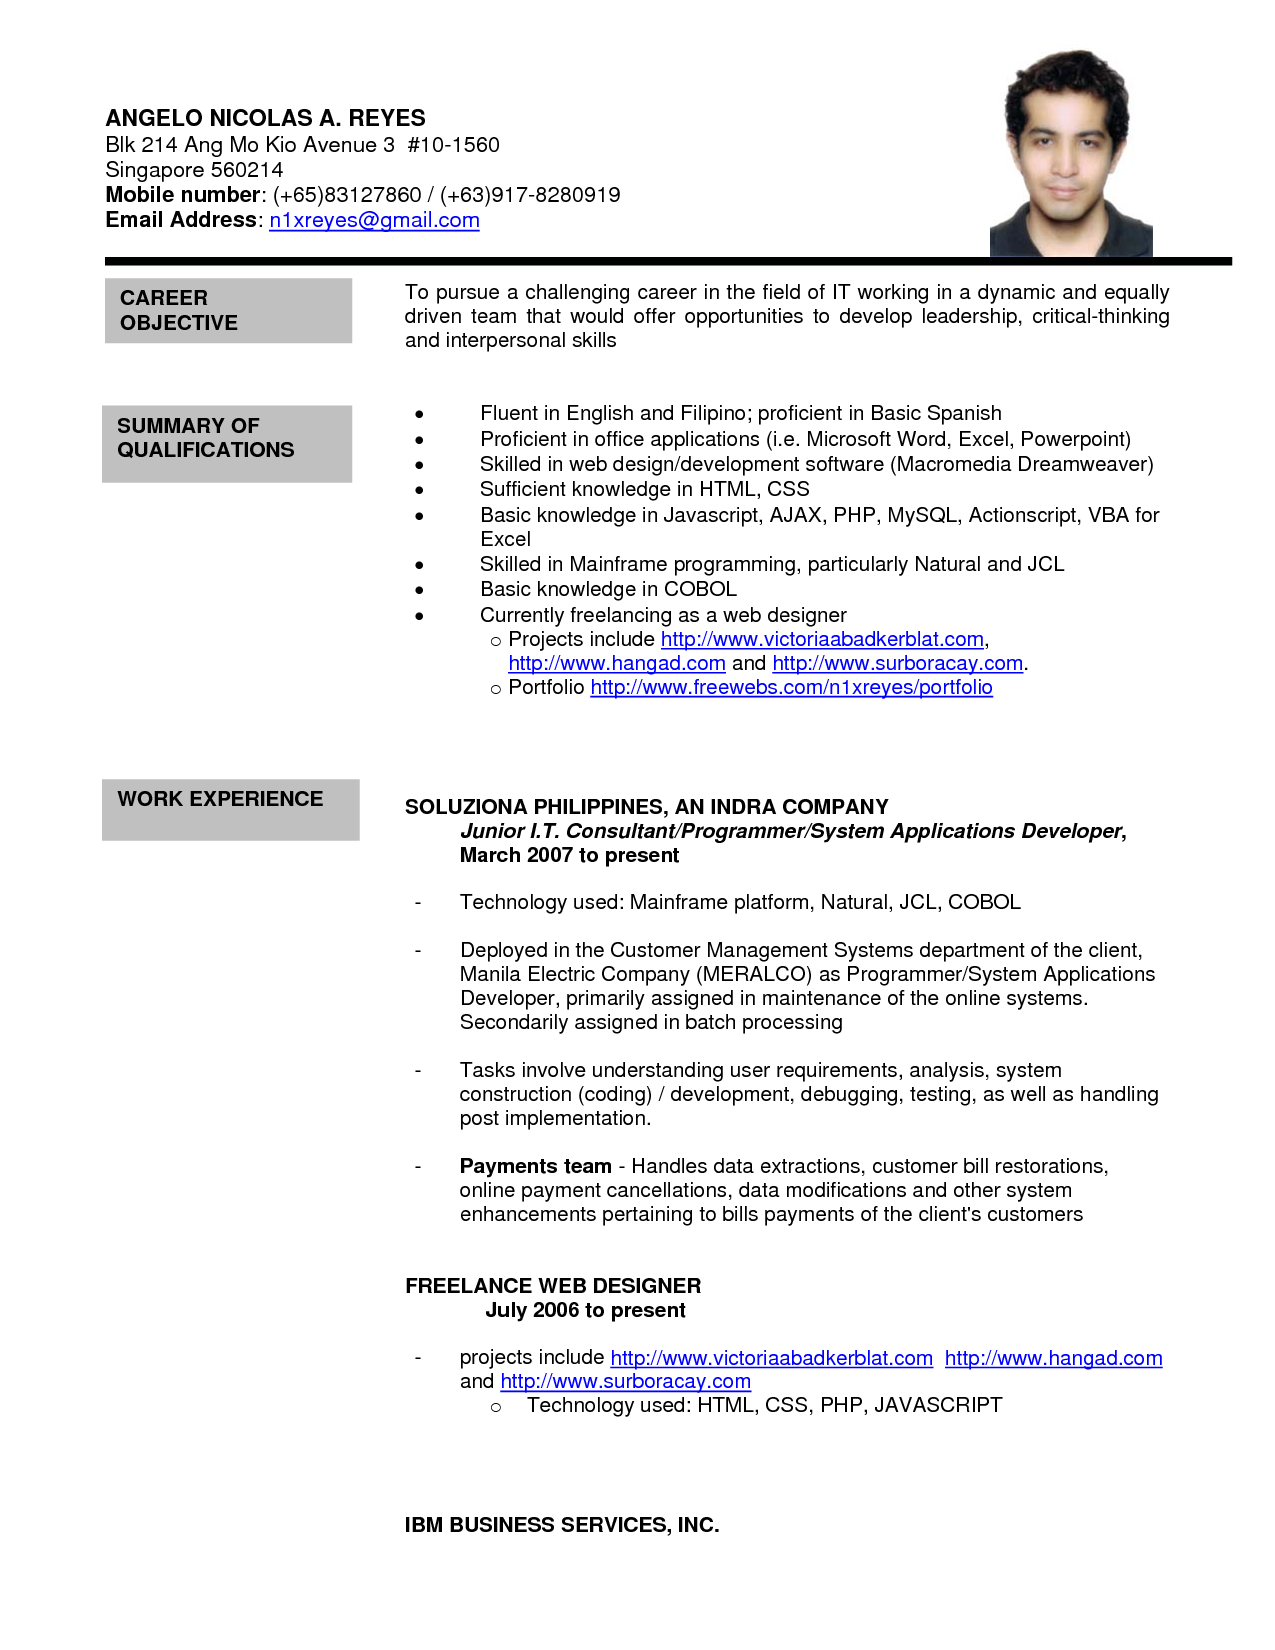 Sap adobe forms sample resume || Nuclear power essays